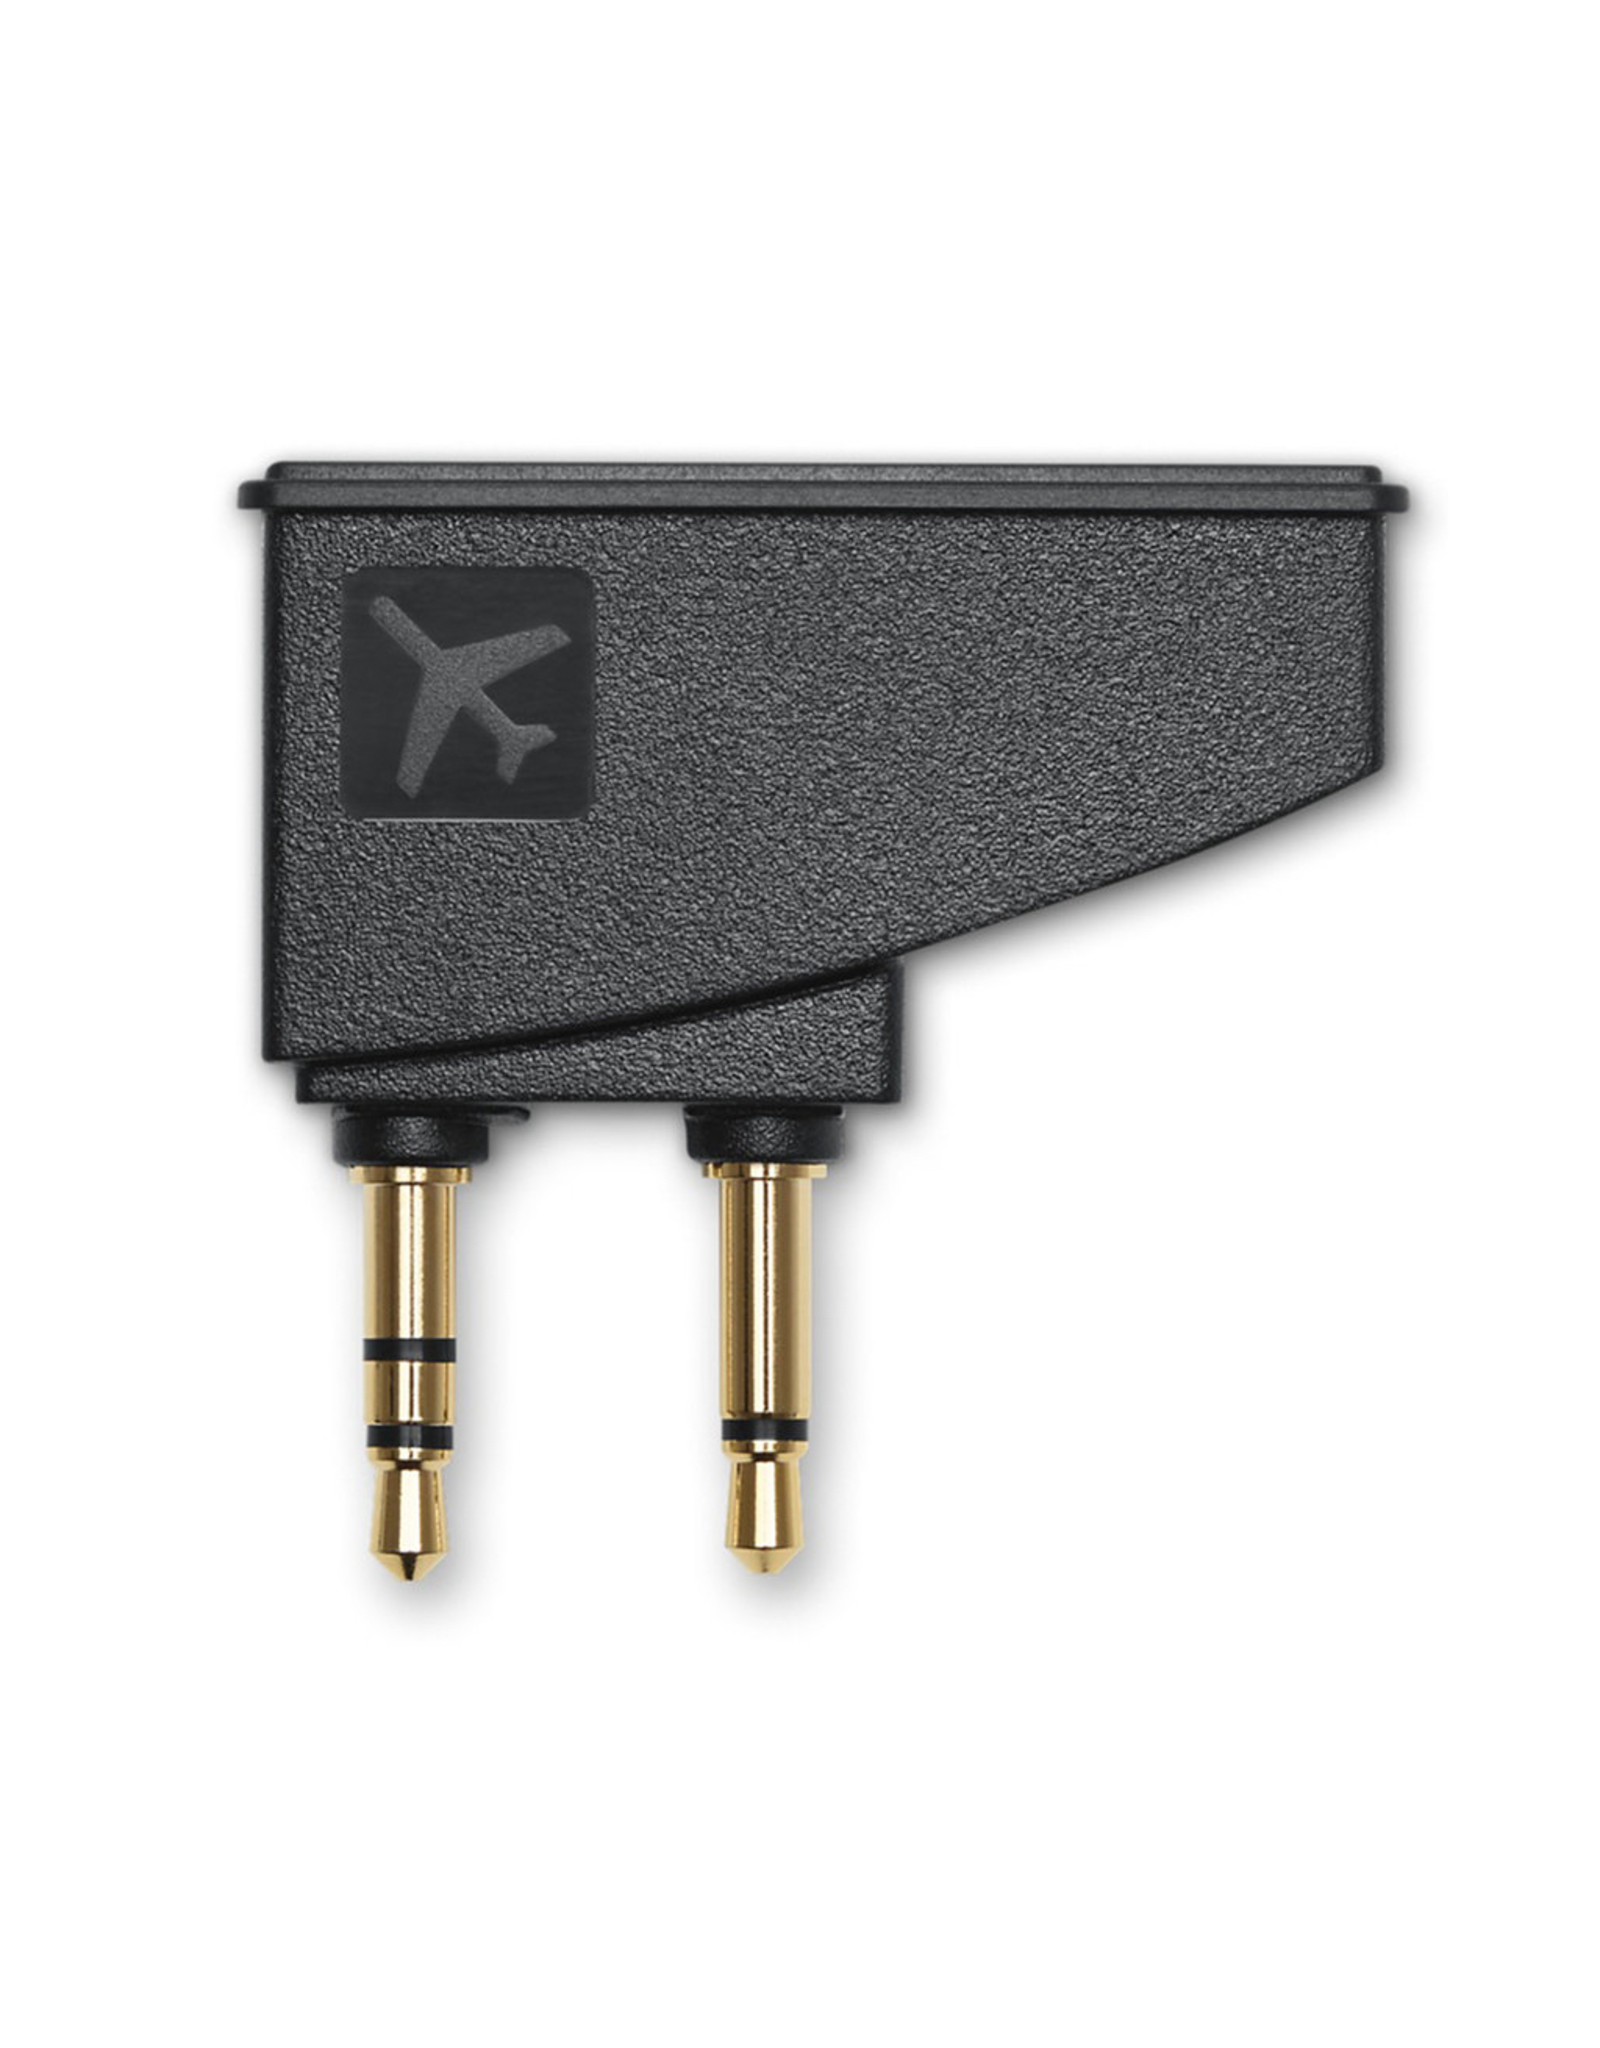 BOSE BOSE Airline Adaptor to suit QC and any wired headphones